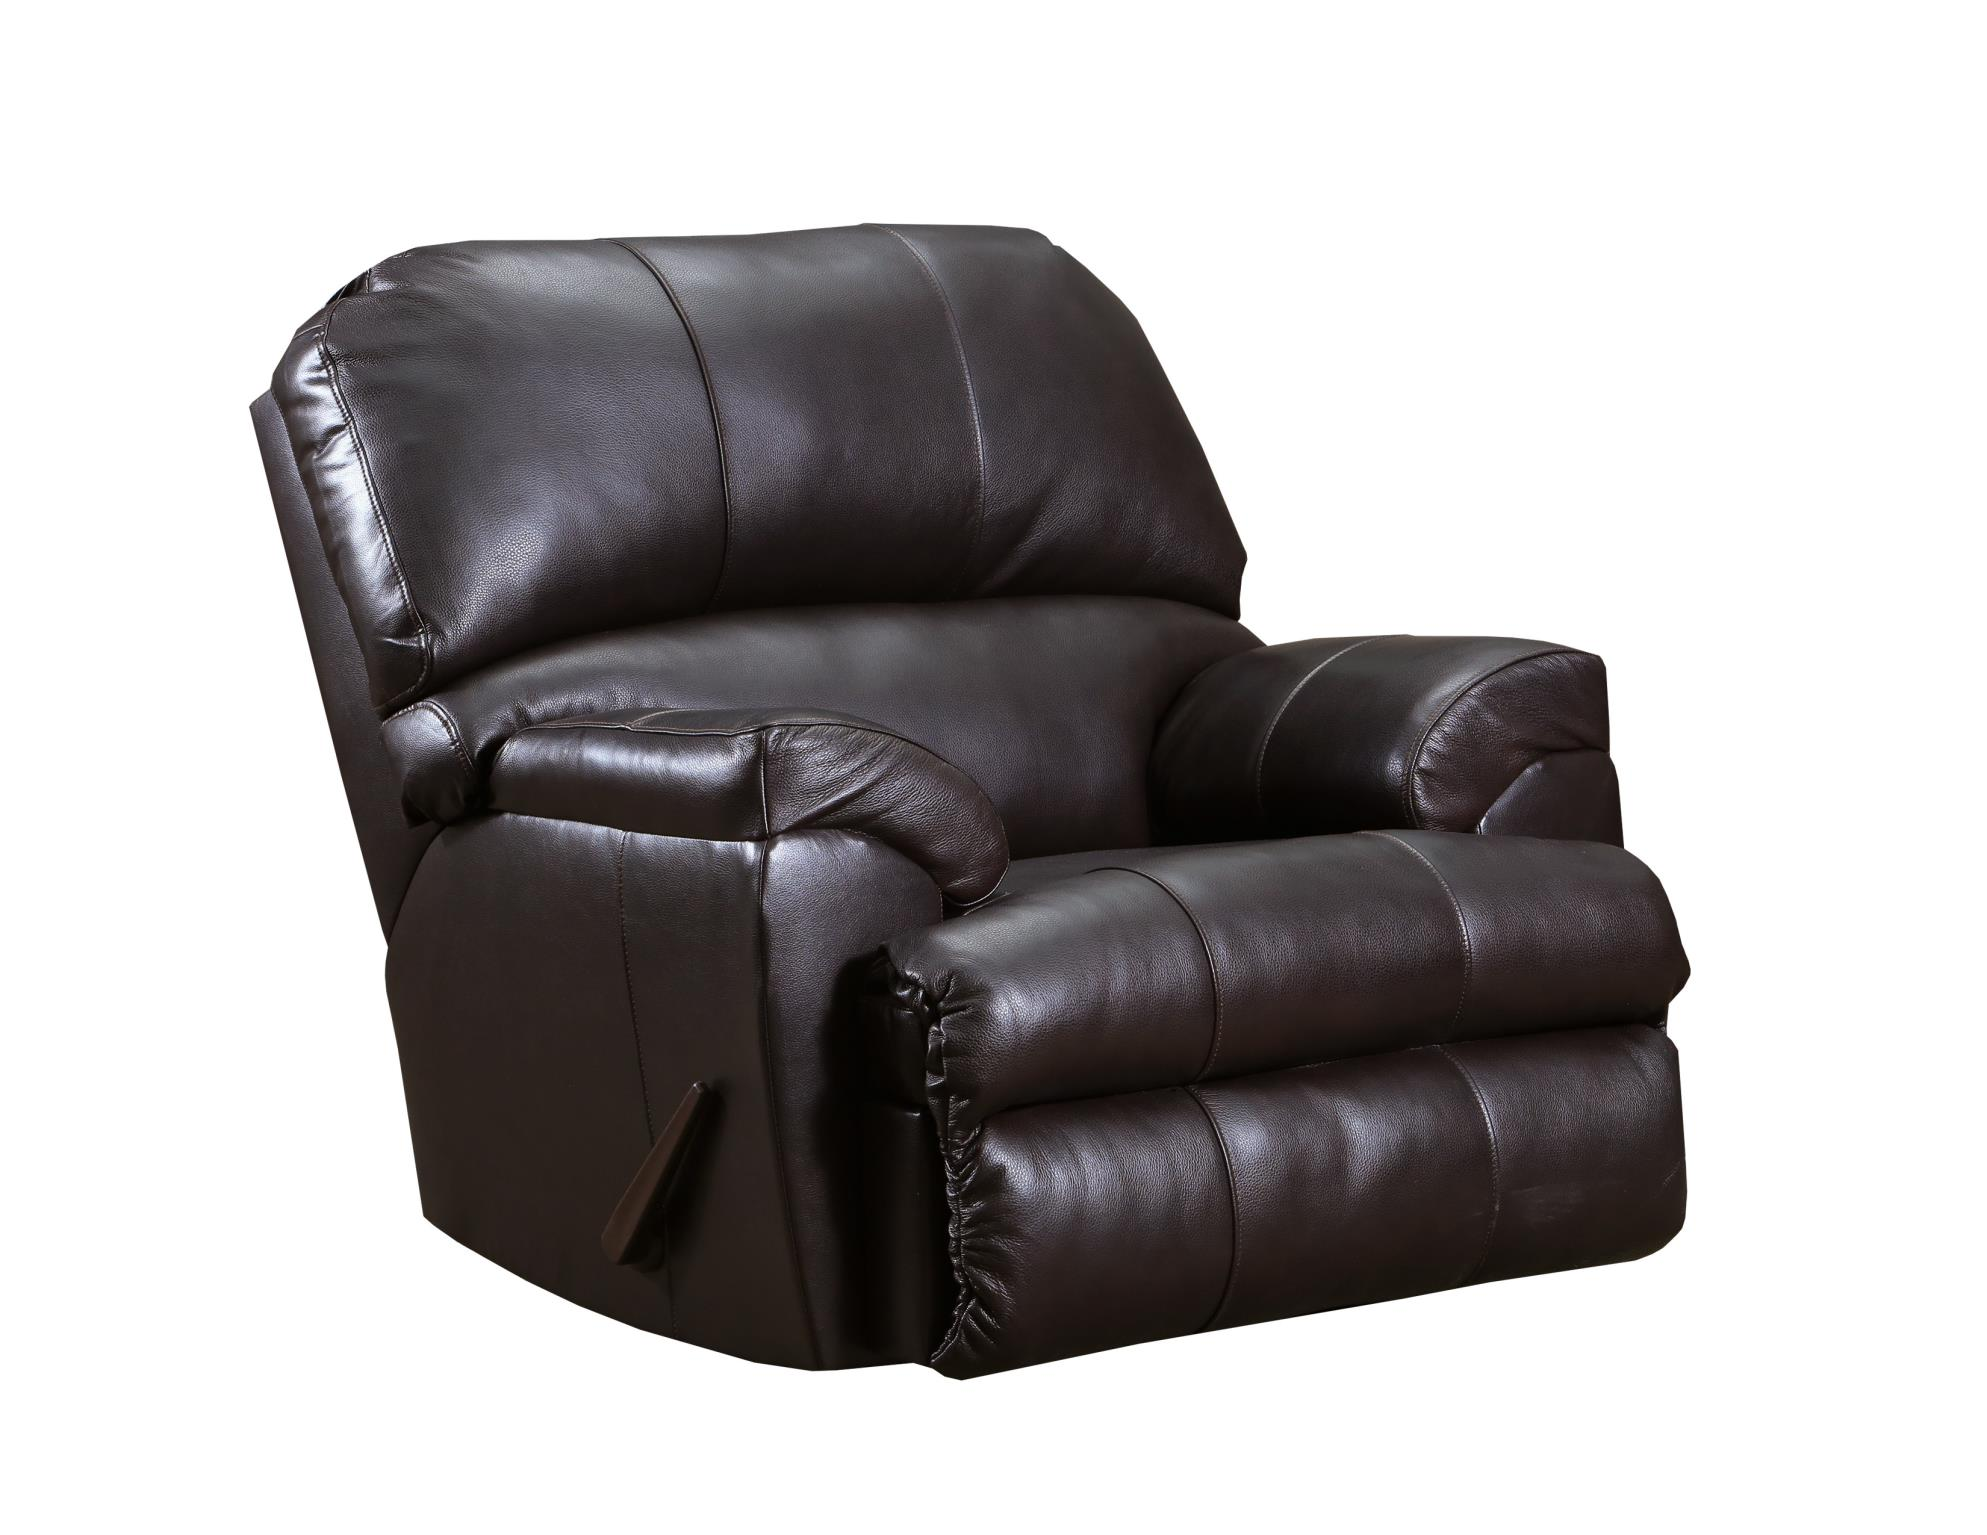 55767 phygia espresso brown leather recliner chair